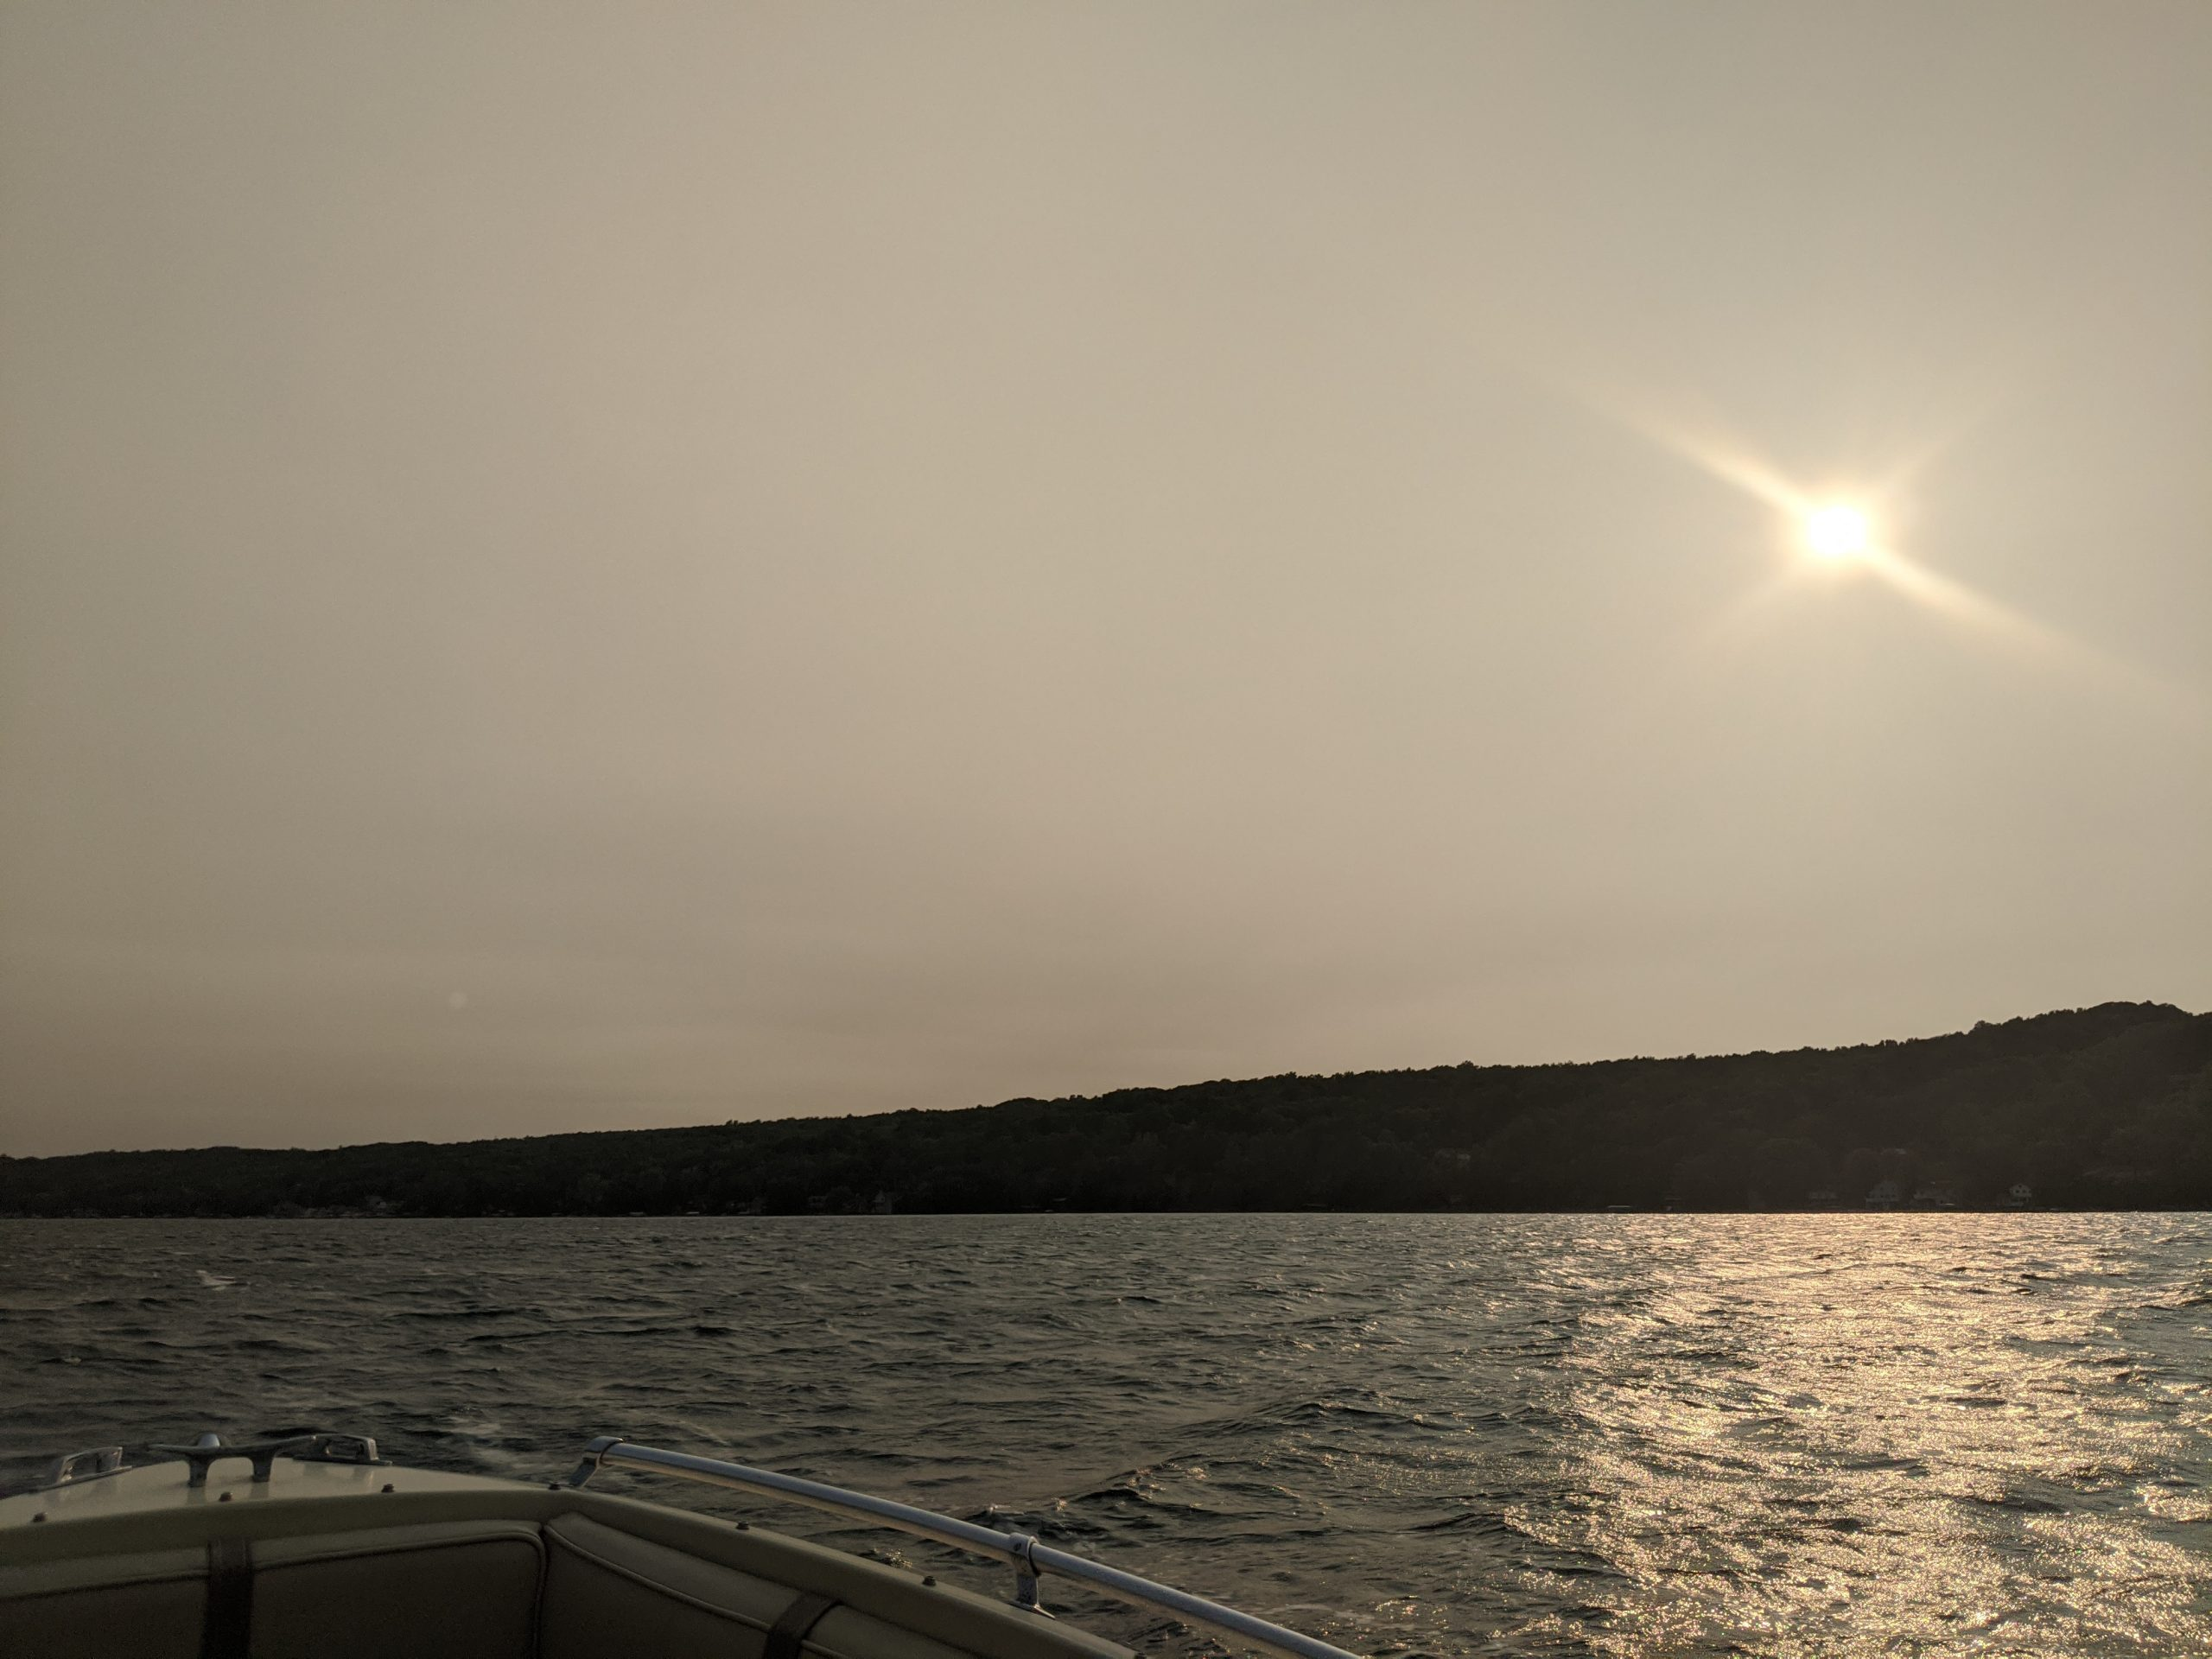 Smoky view of the lake with the sun glimmering in the dark gray sky